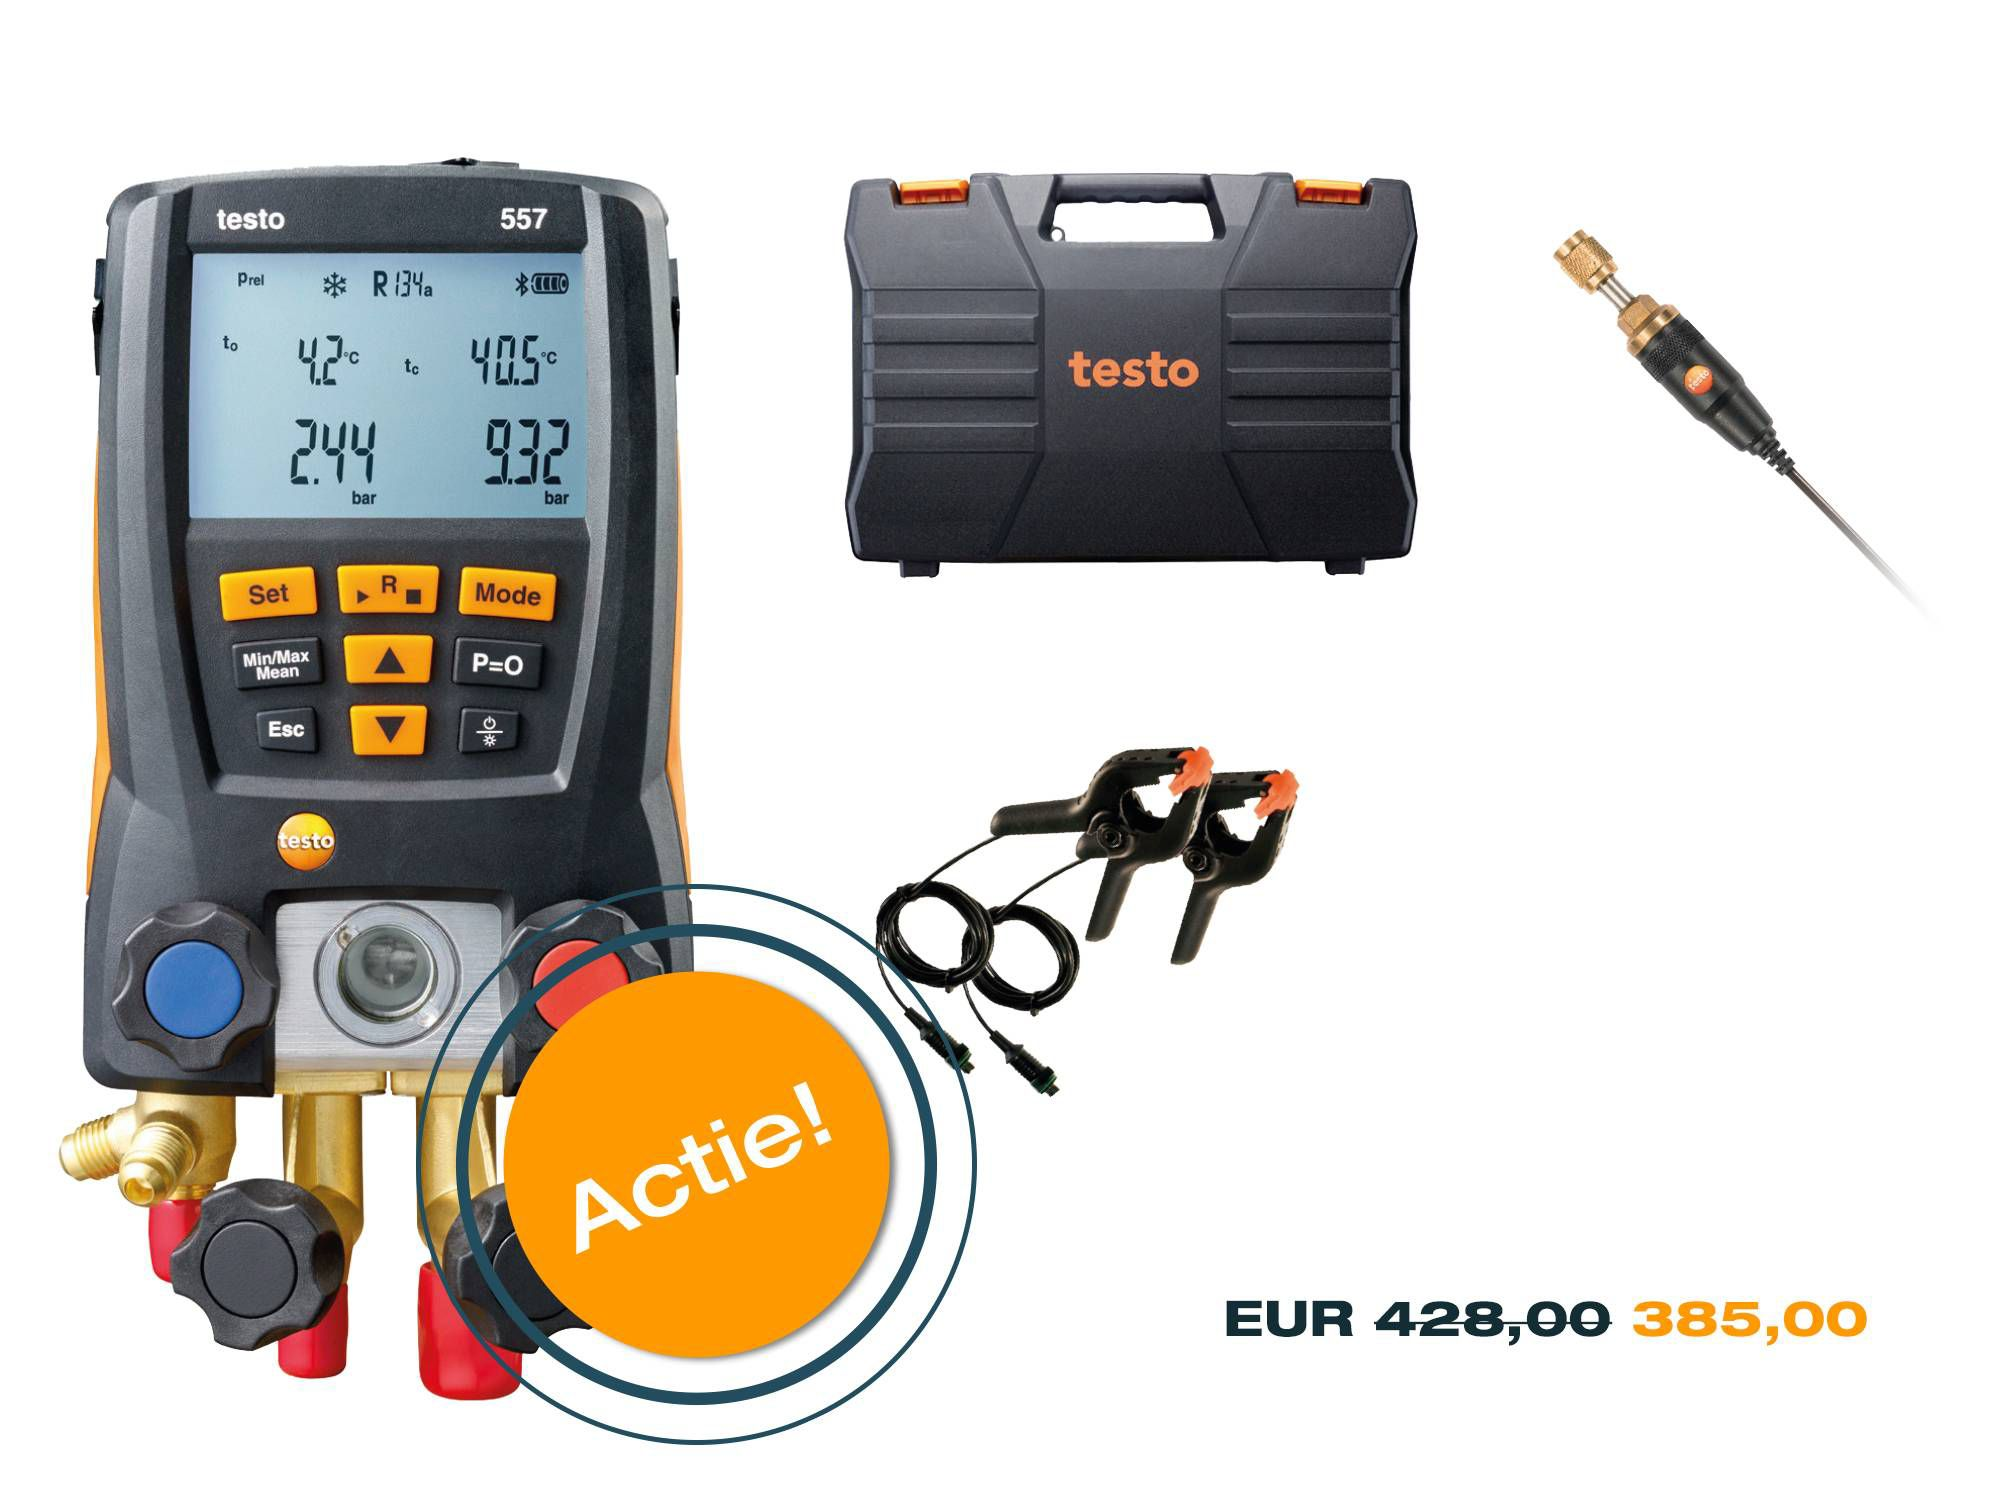 heating-2020-testo-557-set-1-promo-NL.jpg